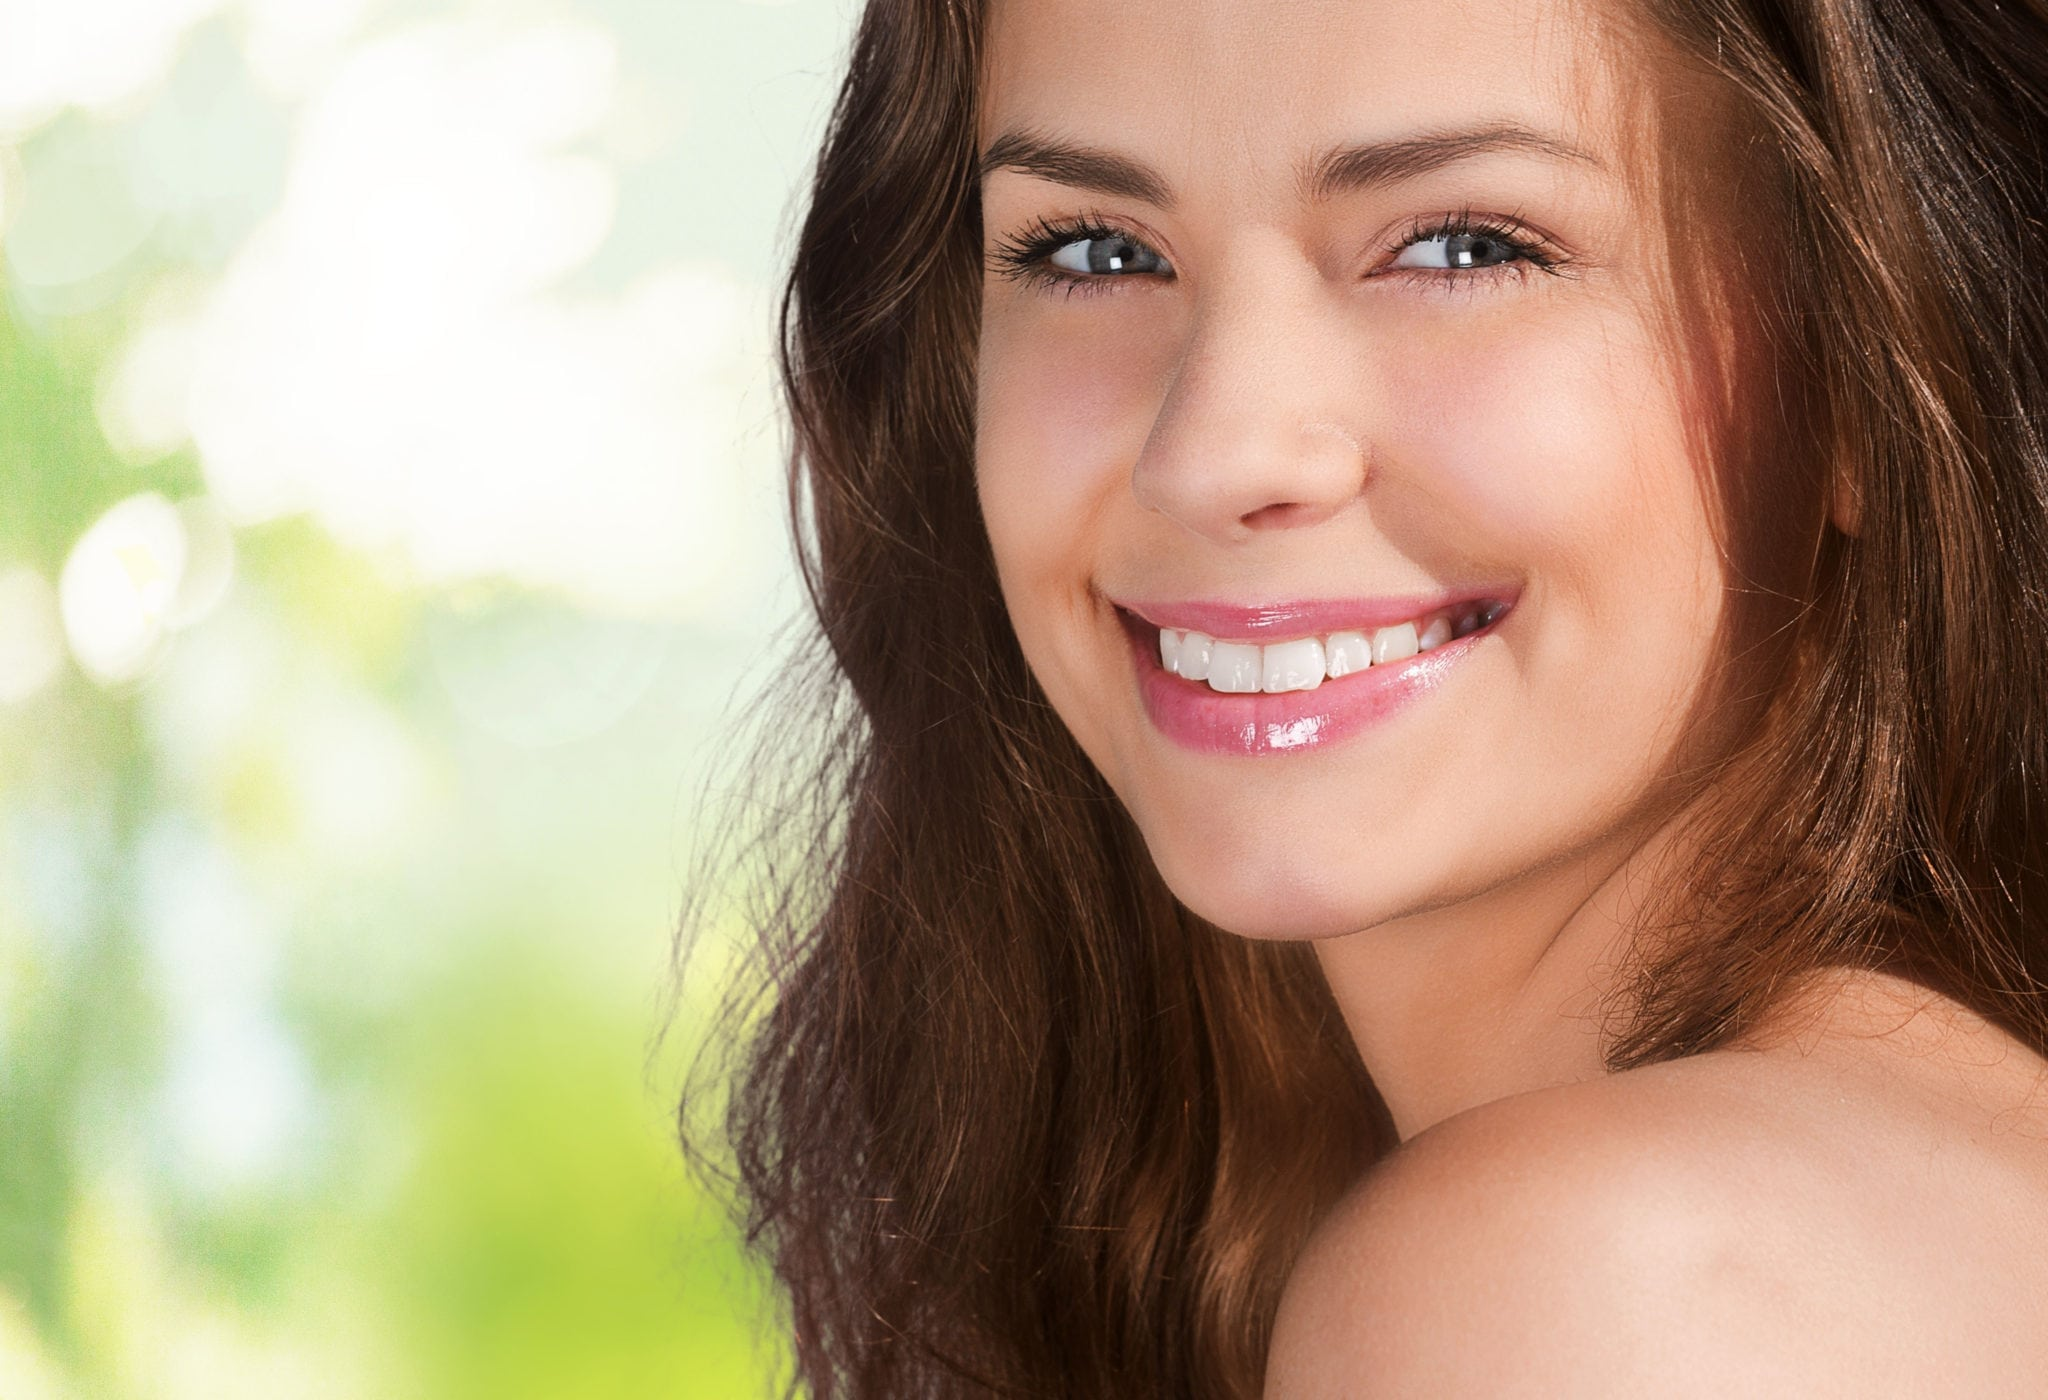 Pros and Cons of Rhinoplasty